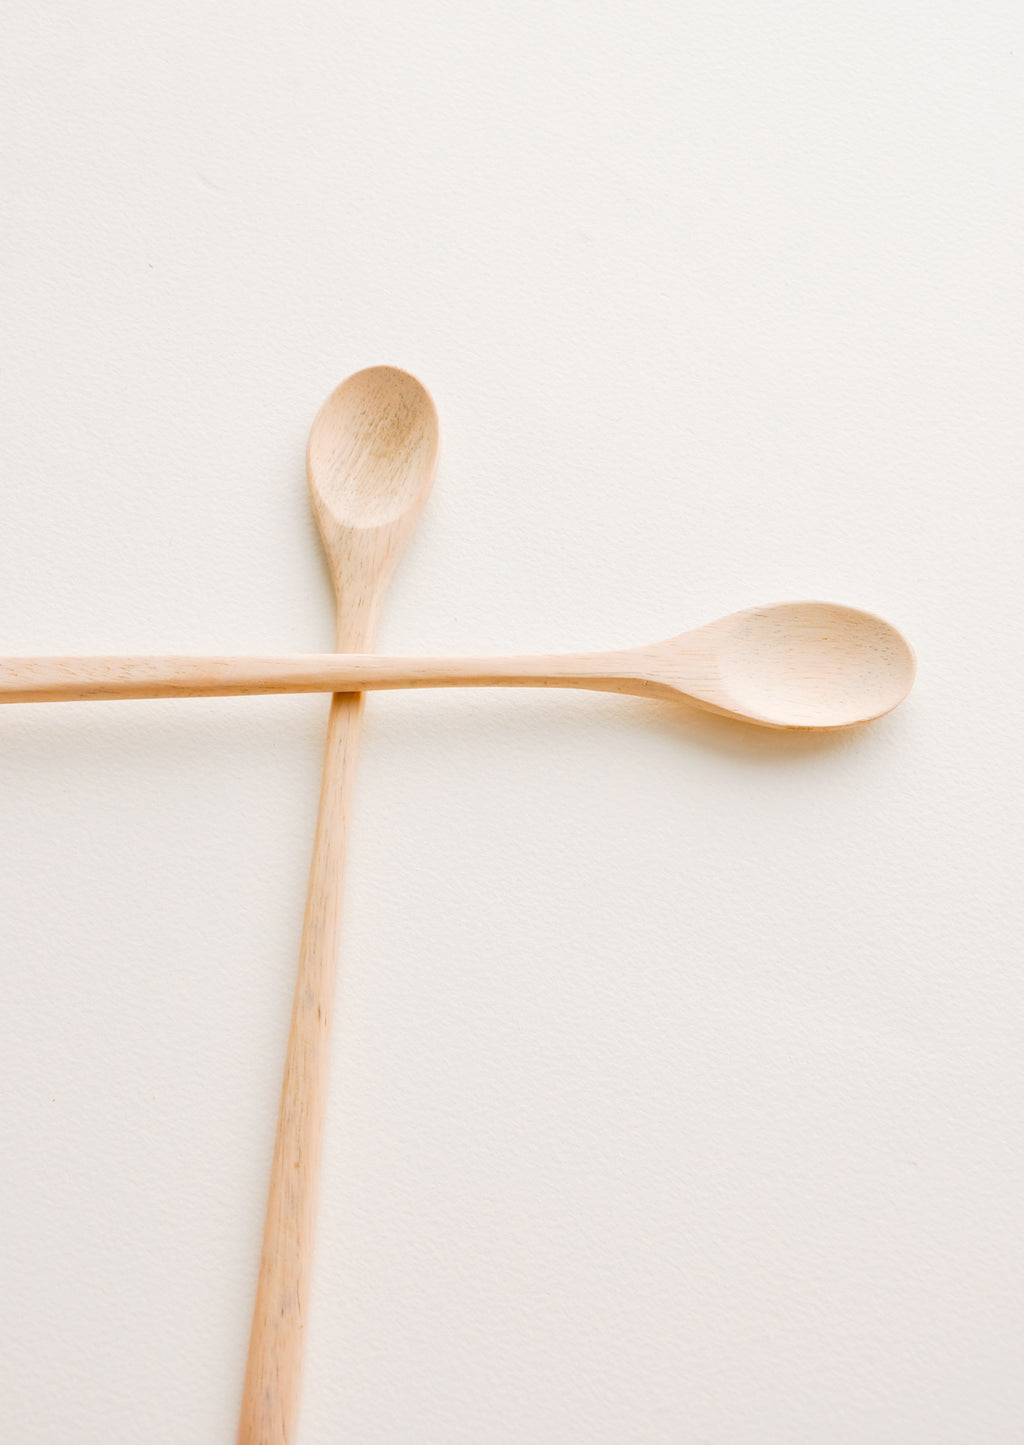 Mango Wood Kitchen Utensils